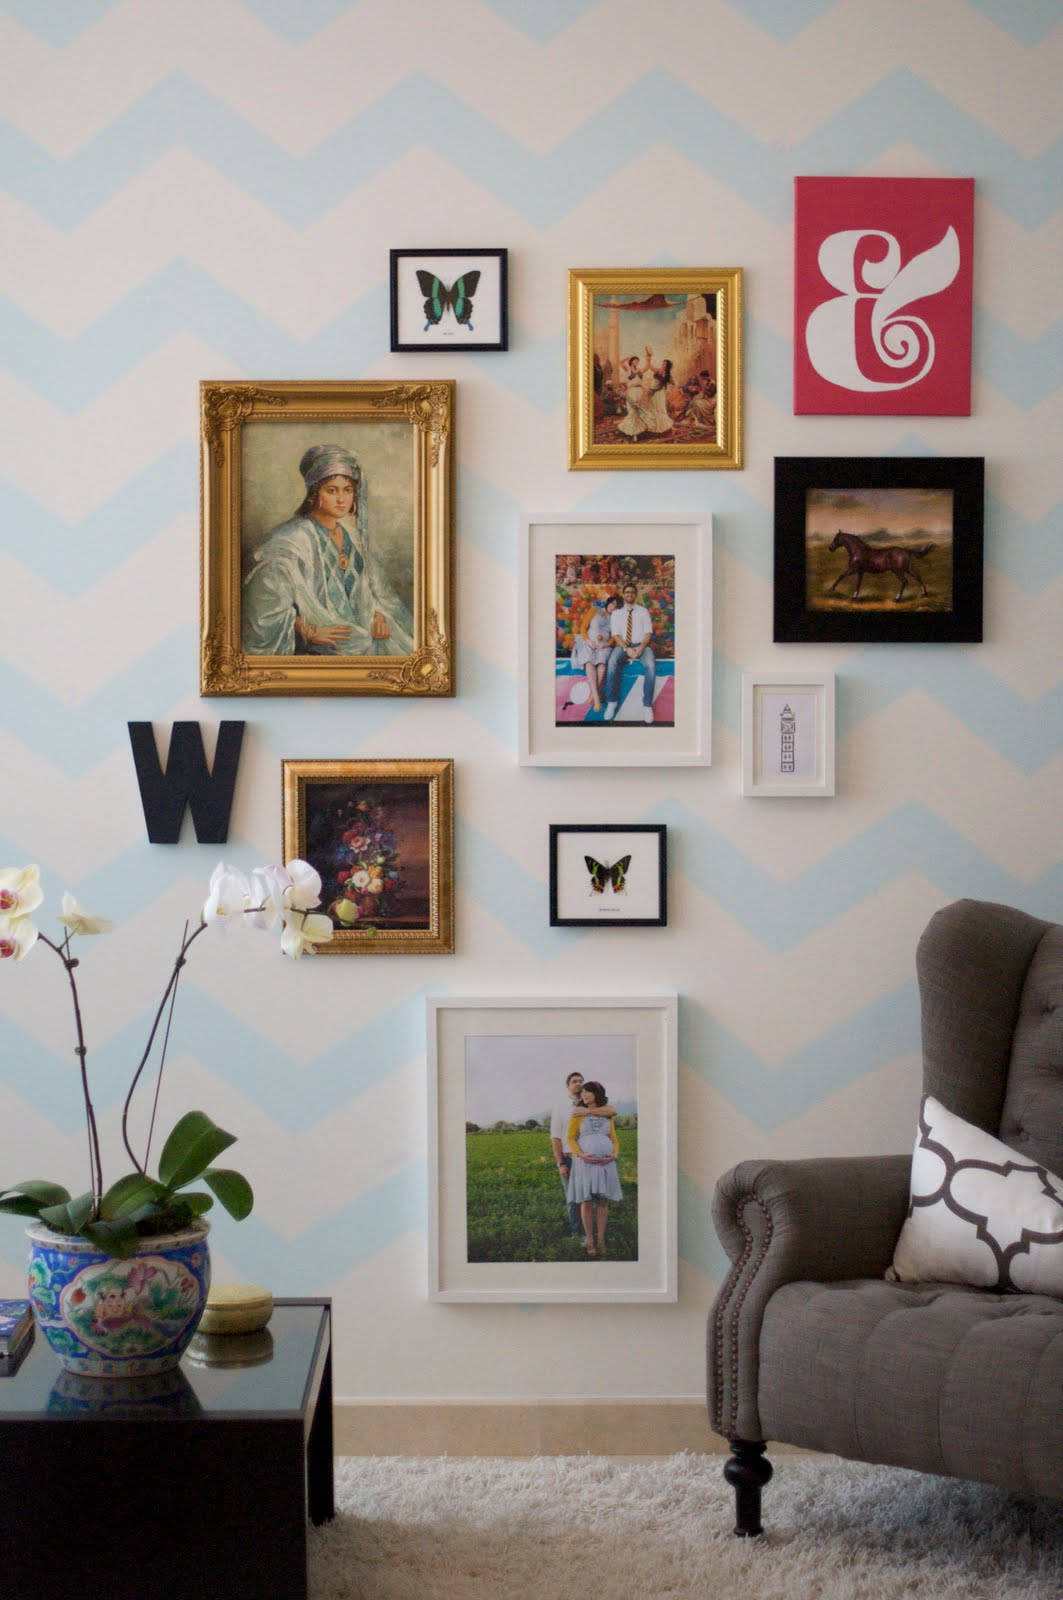 It is fine to mix frames, add mirrors, antlers, letters etc. but keep that straight line. The straight line formed on the right side of this picture with the two prints helps to anchor this arrangment.